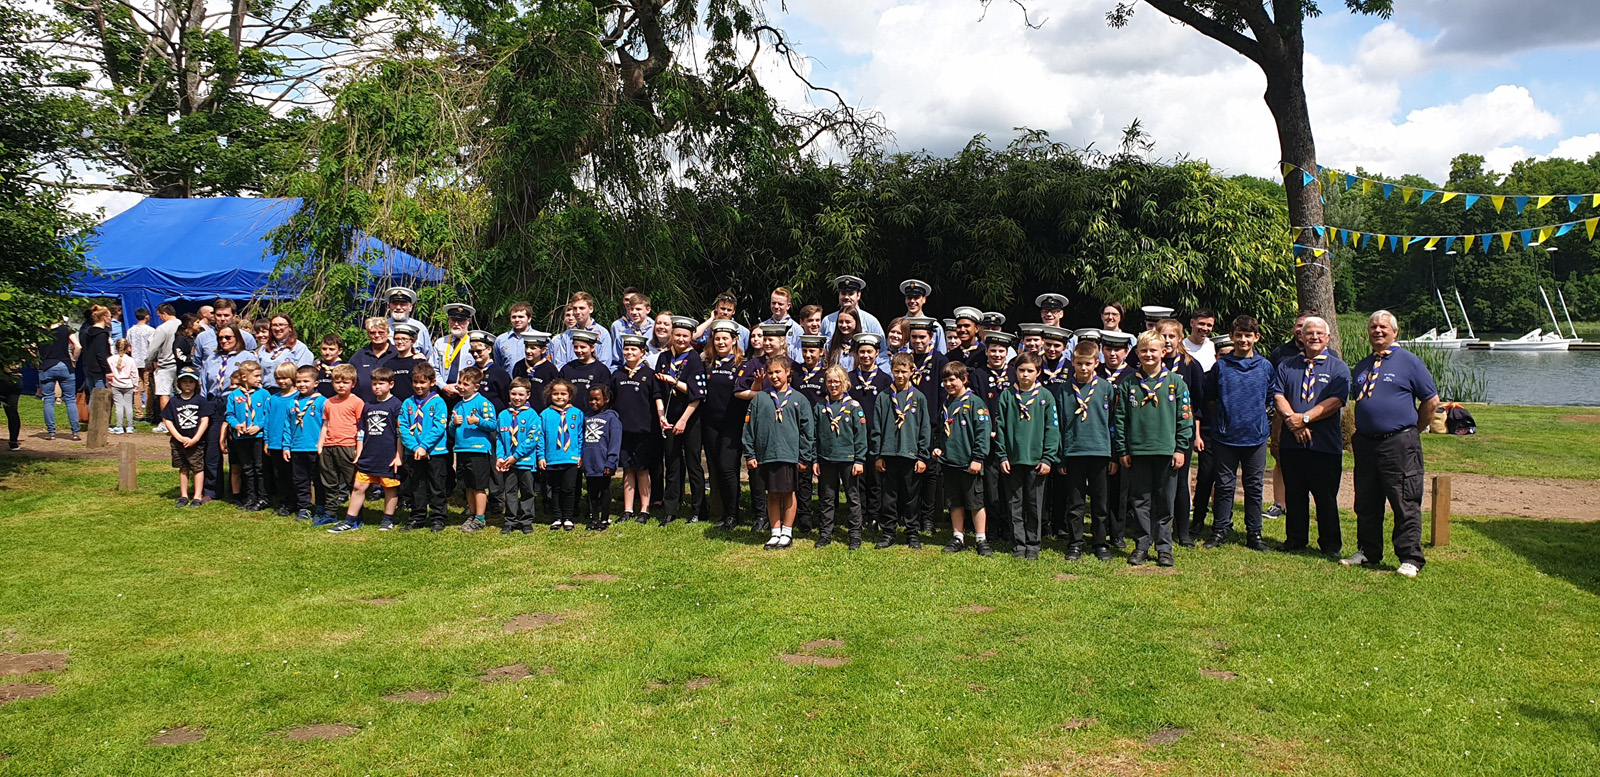 First Luton Sea Scouts 110th birthday